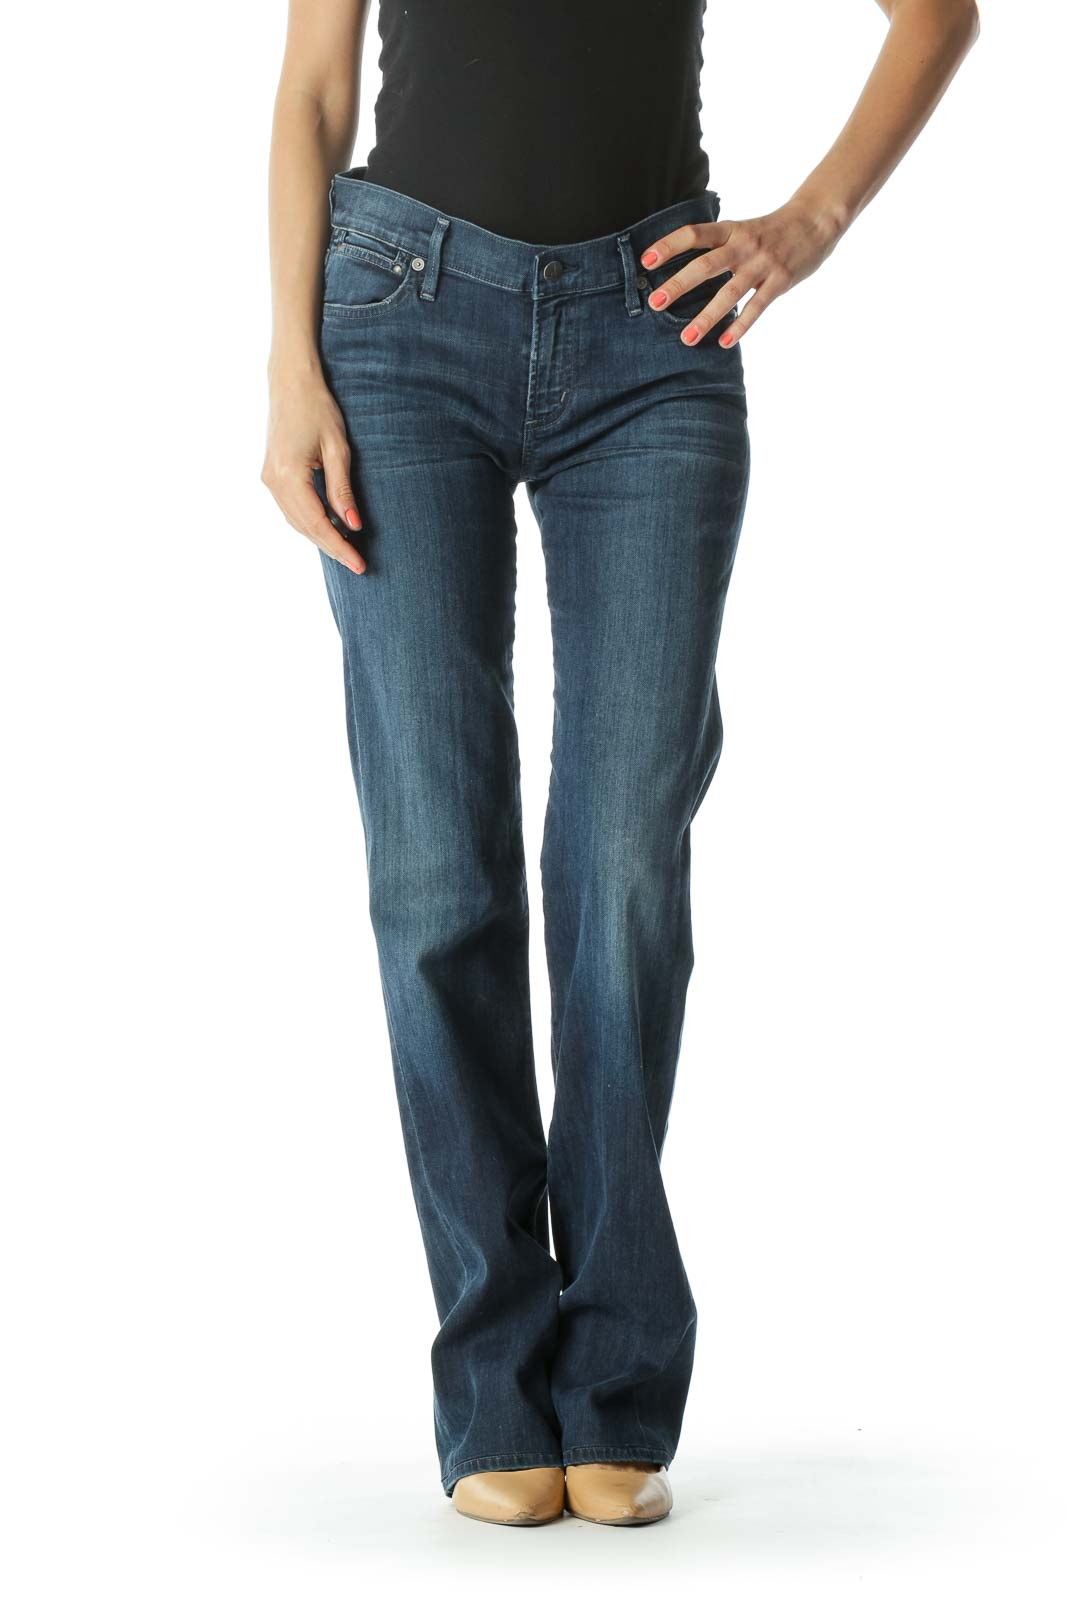 Blue Medium-Wash Light-Weight Straight-Leg Stretch Denim Jeans Front